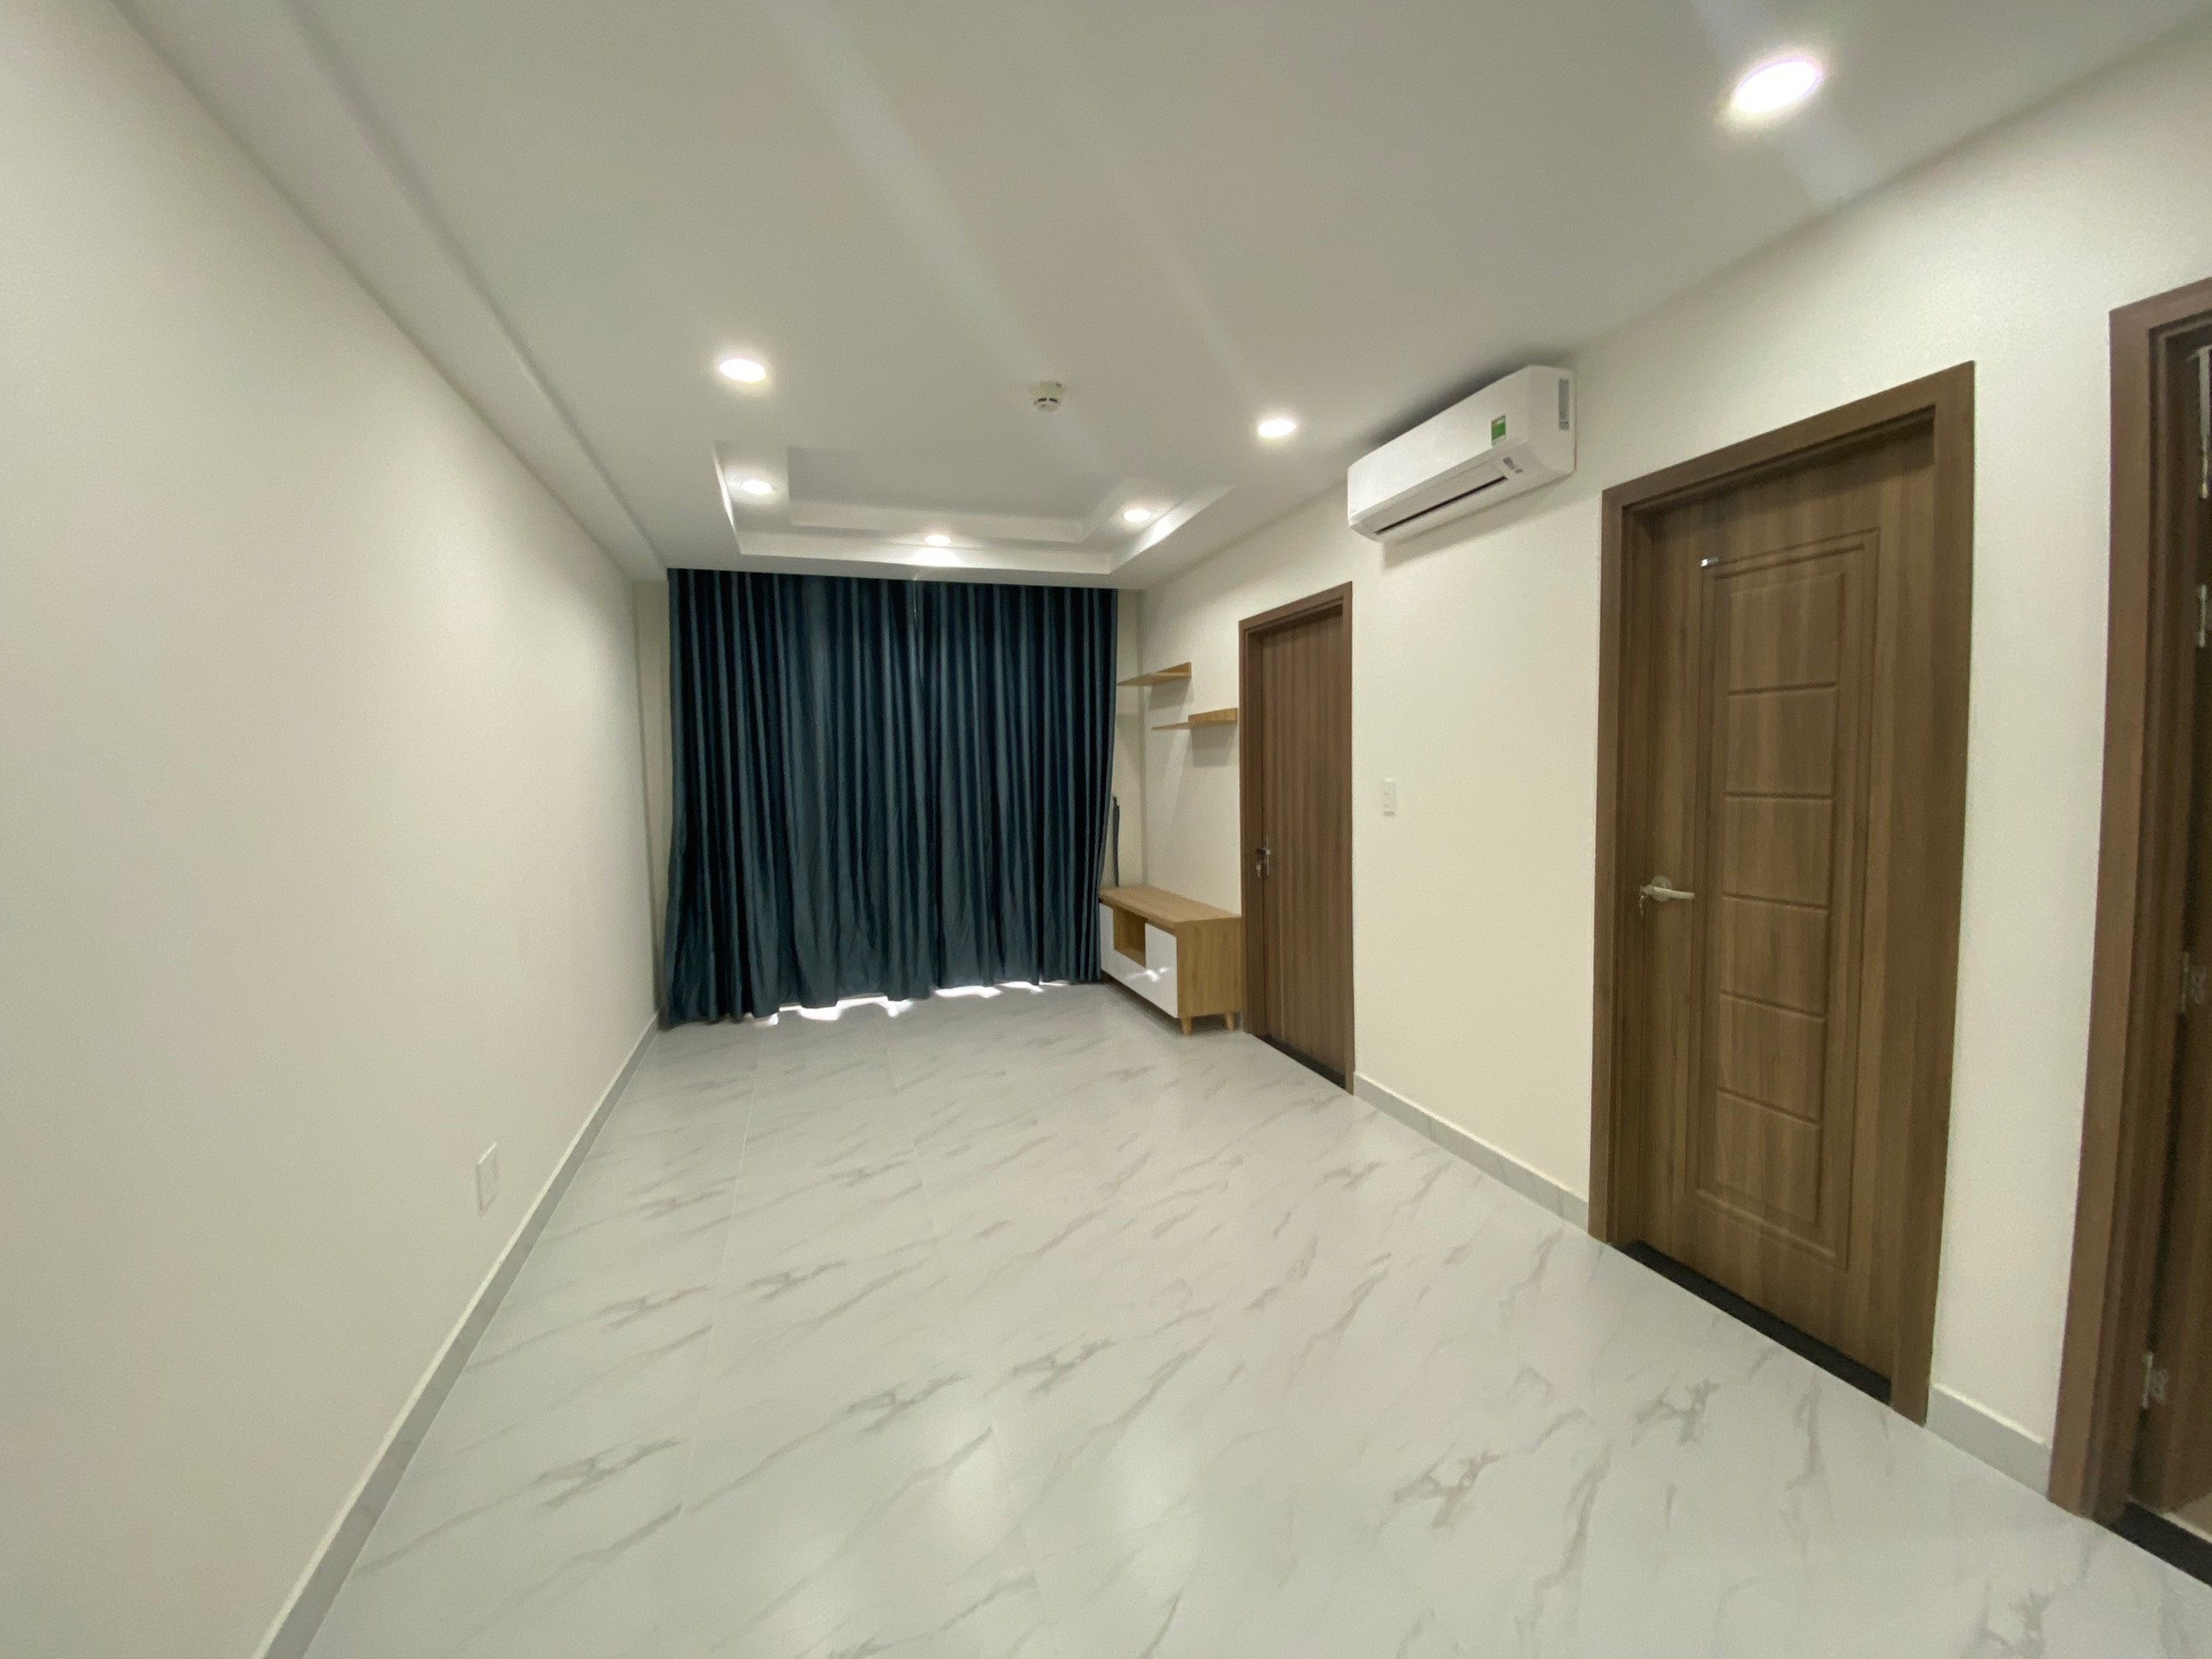 sale Saigon South Residences - 2 bedroom - 2 wc